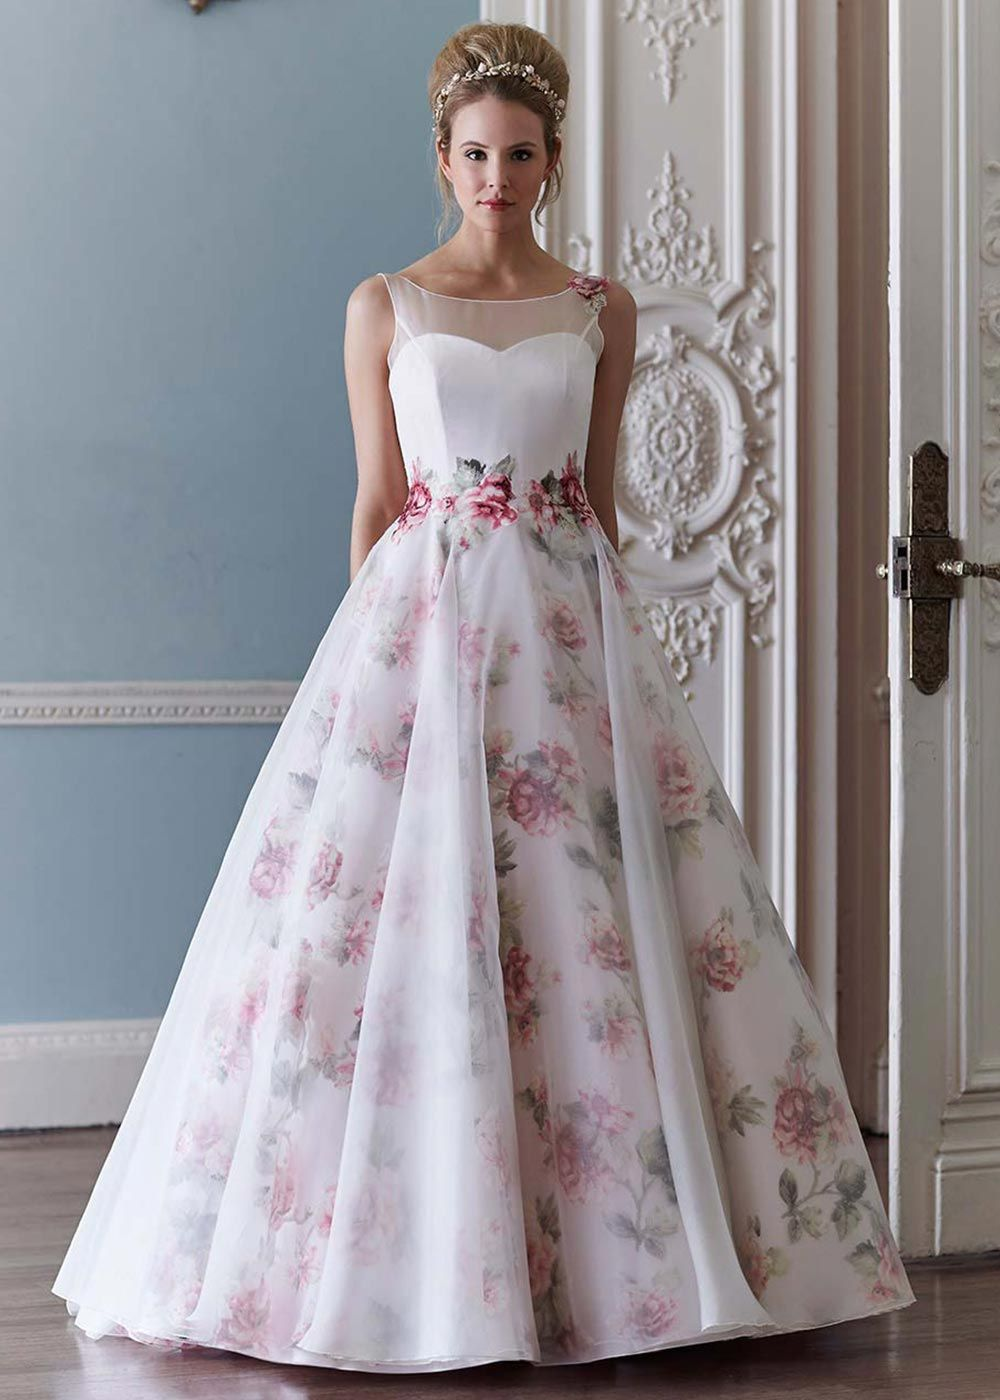 to wear - Wedding Unusual dresses pictures video